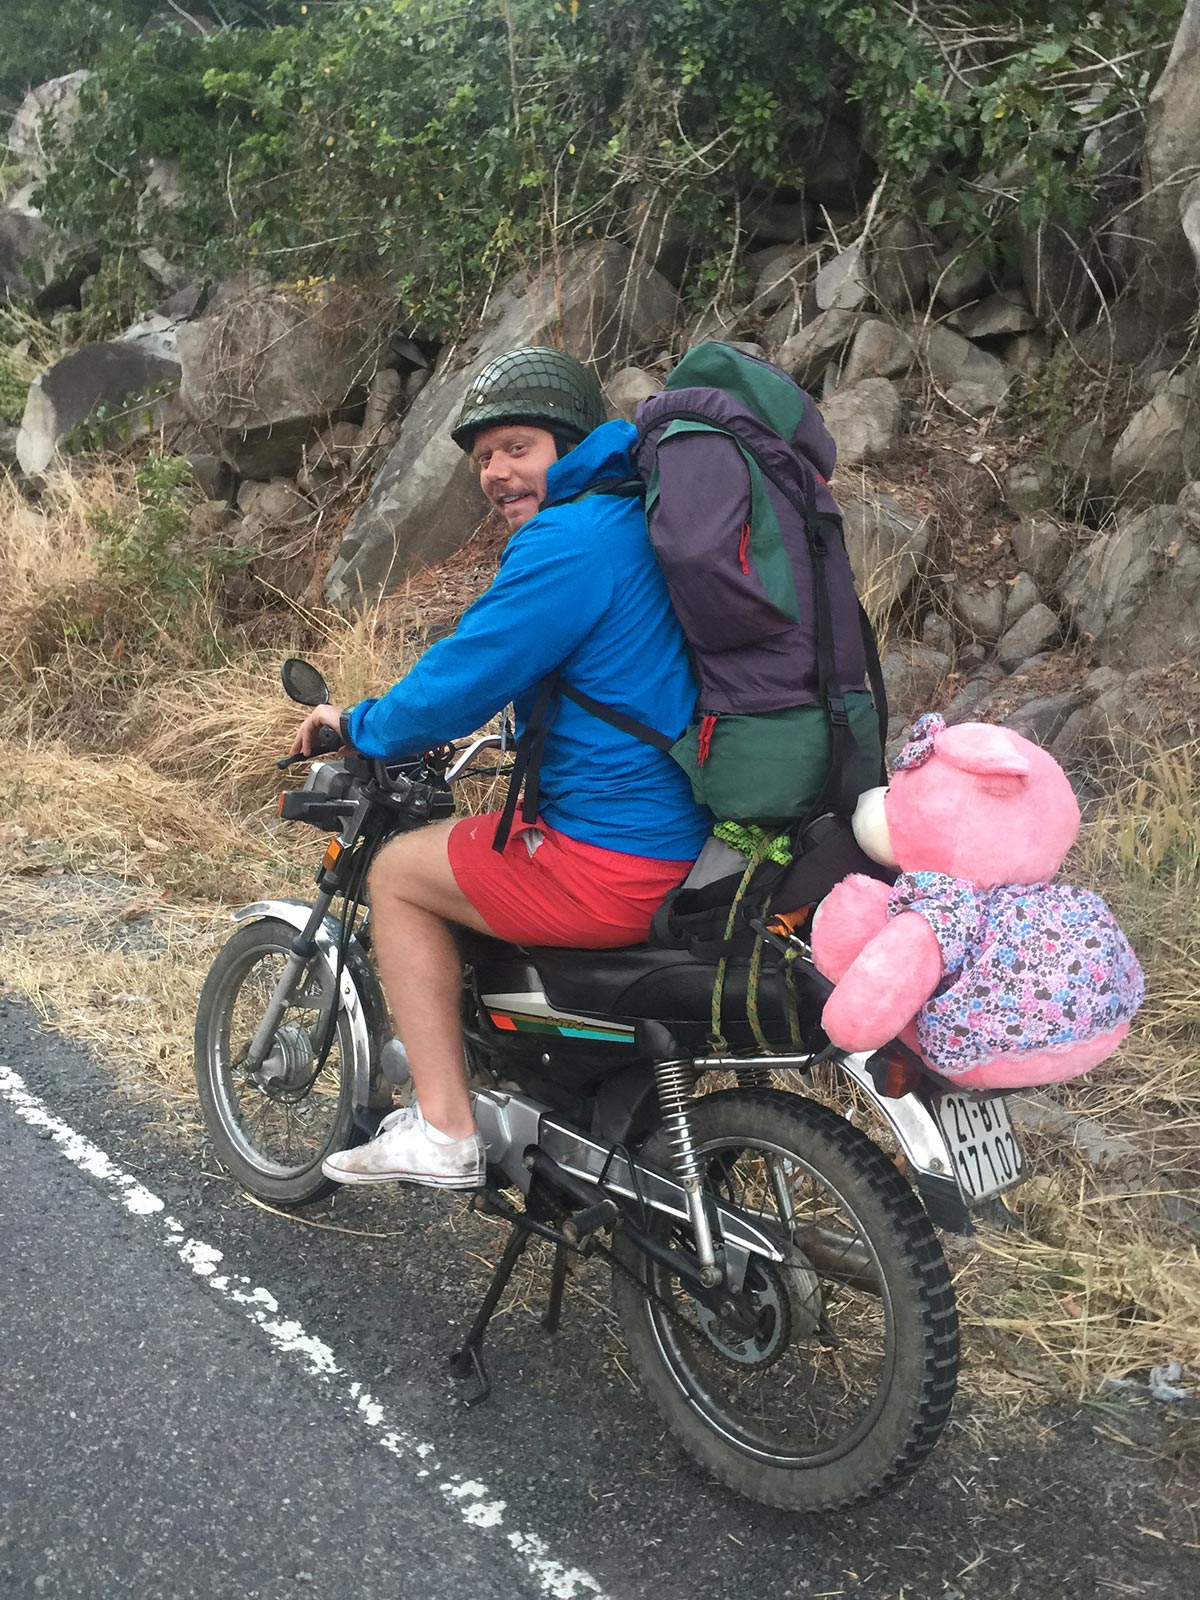 A friend and pink teddy riding the motorbike in Da Lat, Vietnam. Night rider and a broken bike